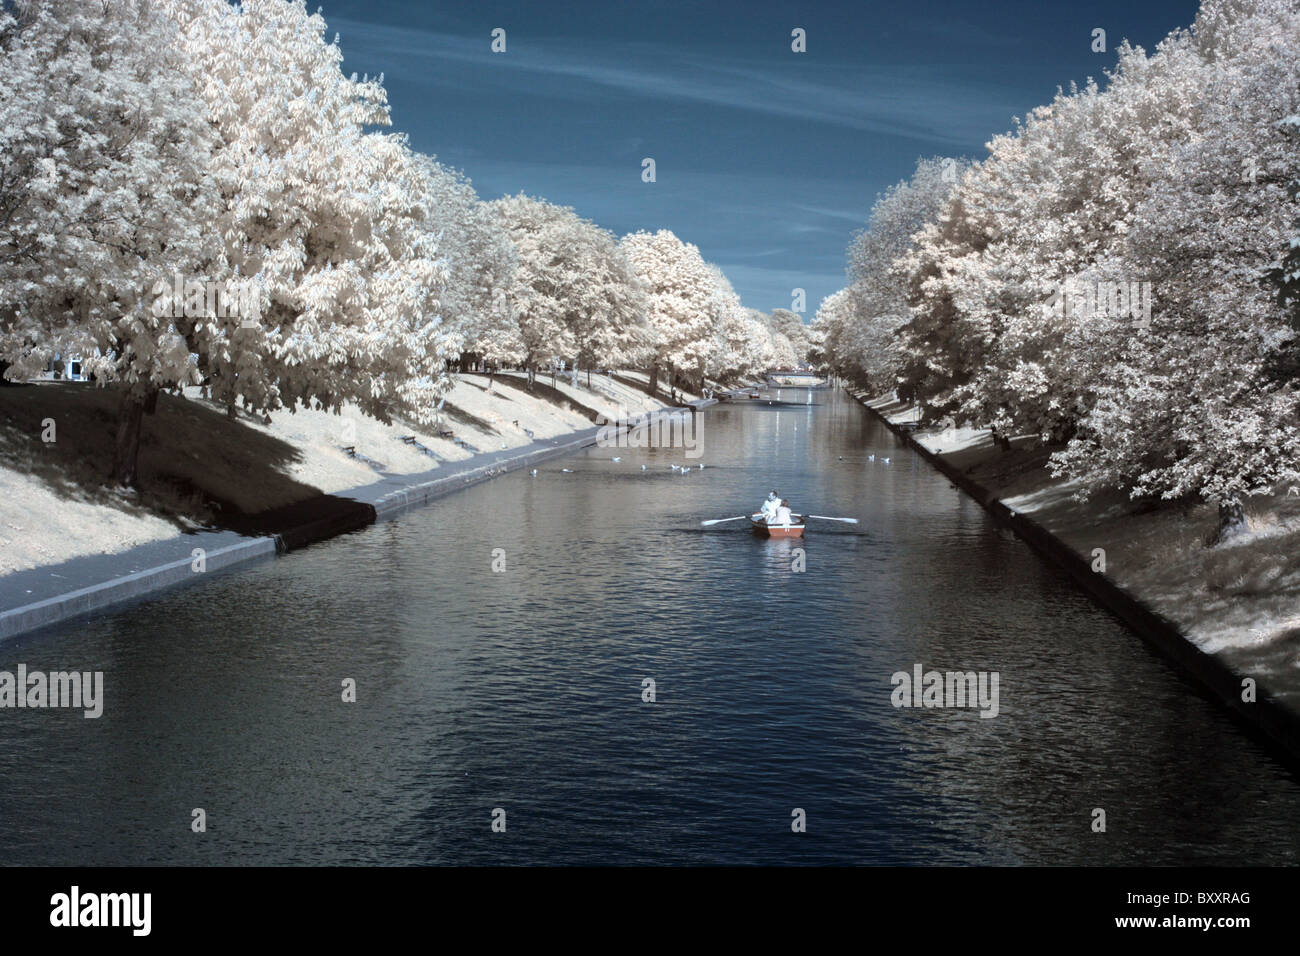 looking along the Royal Military Canal, Hythe, photo taken with an Infra-red camera & channel-swapped. - Stock Image